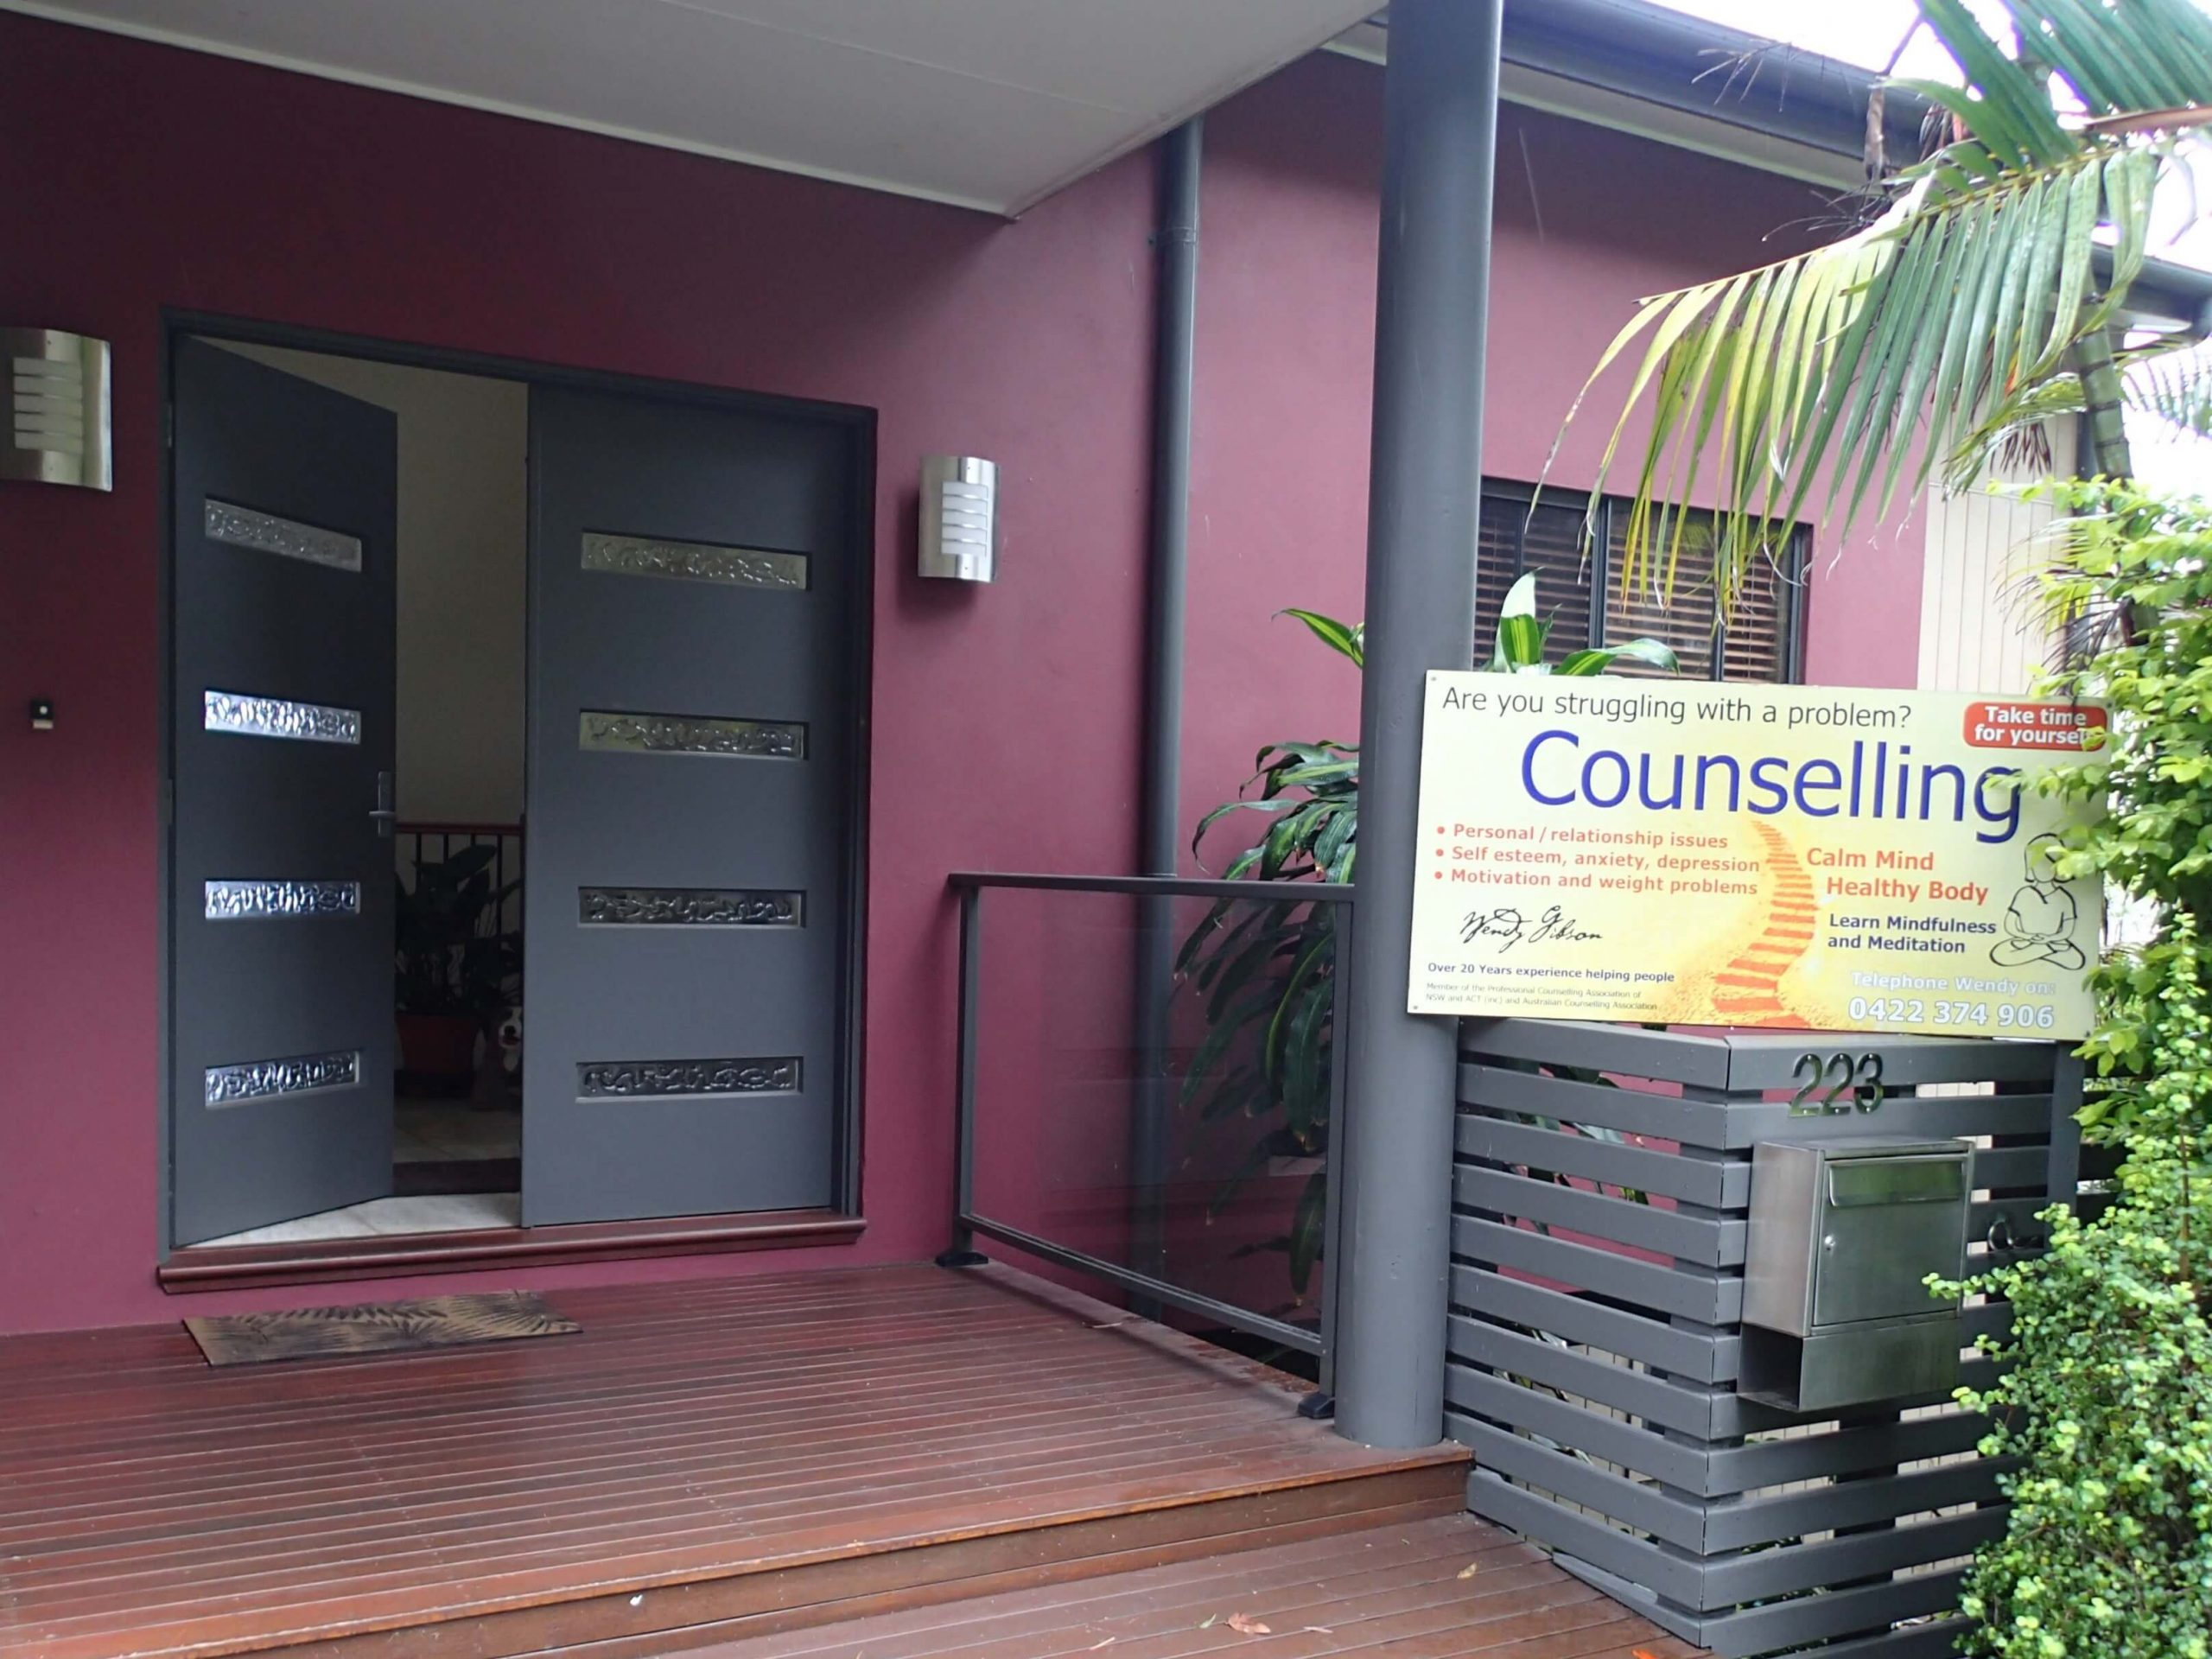 Photo showing Wendy's practice and how counselling helps relationships